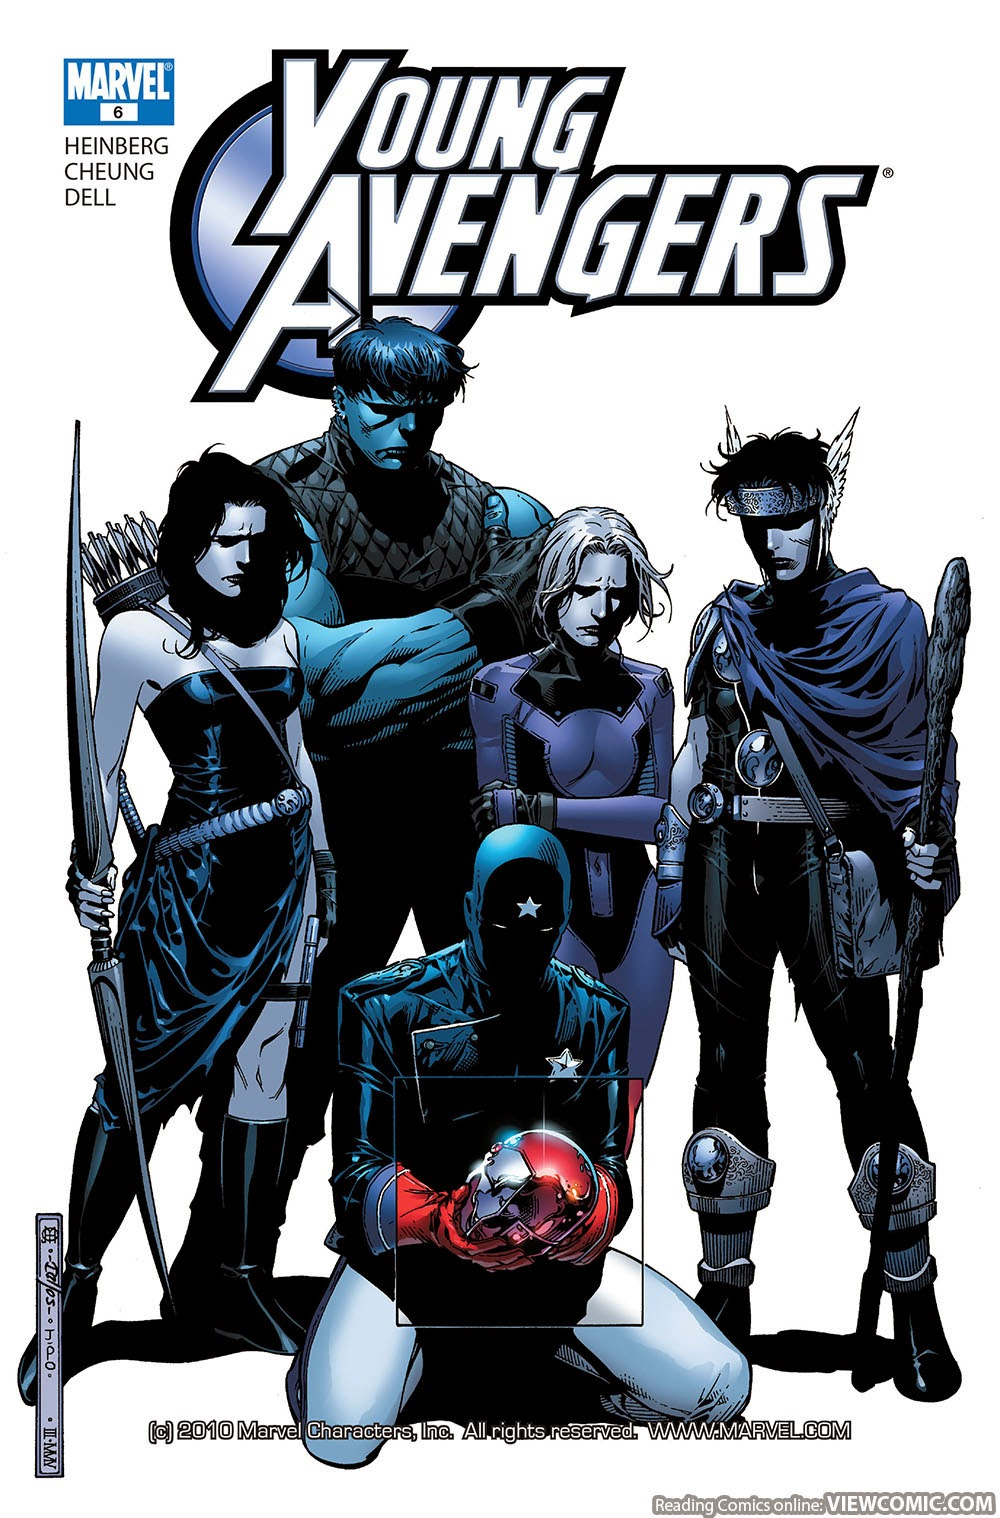 Young Avengers Backgrounds, Compatible - PC, Mobile, Gadgets  1000x1518 px